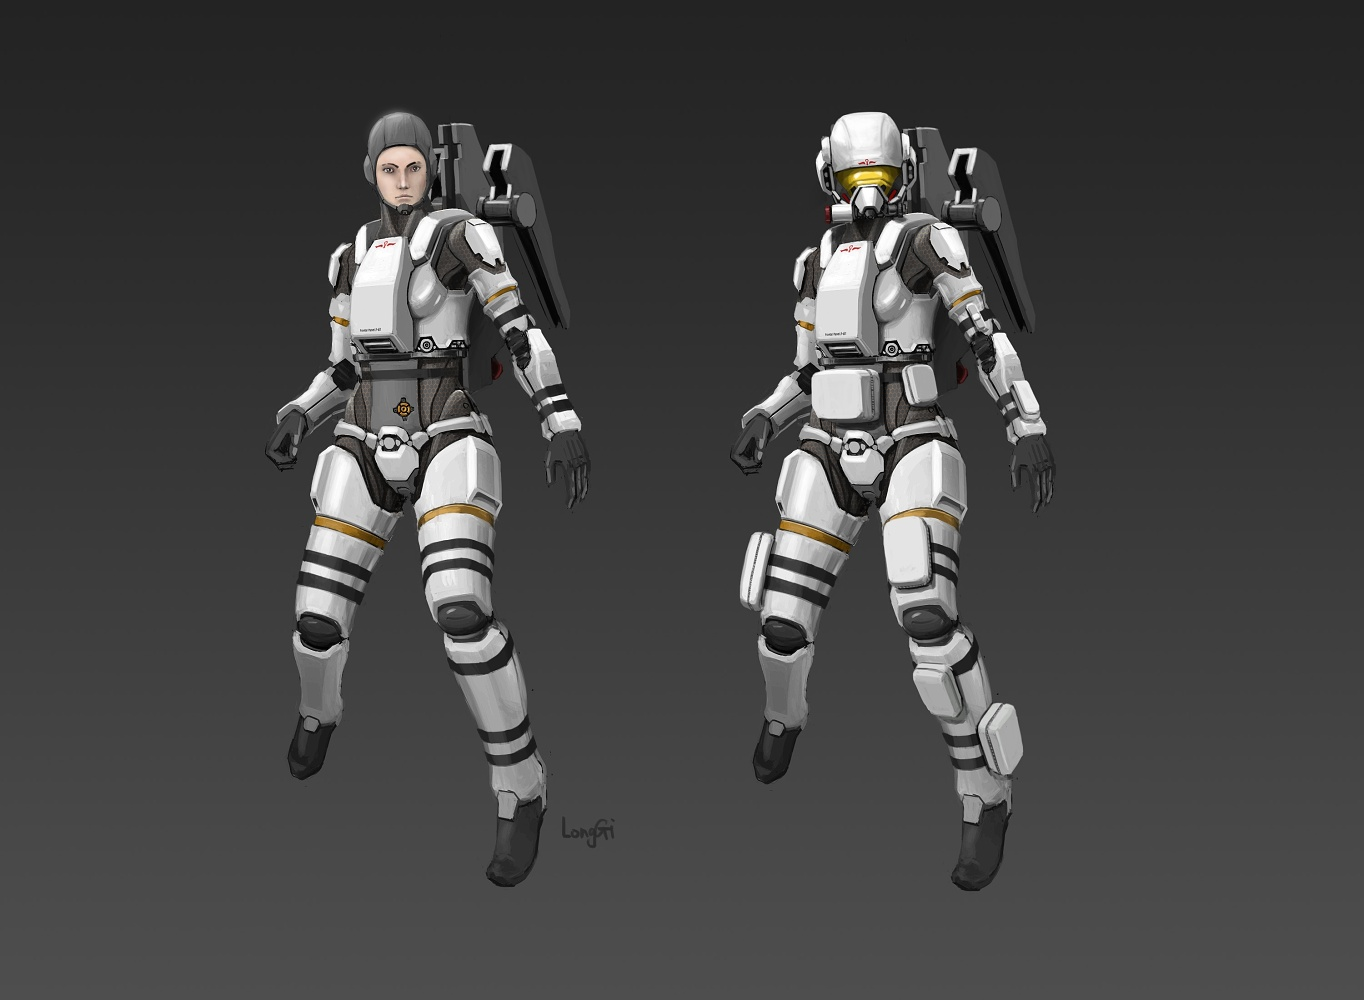 Civilian Space Suit CM81 by longgi